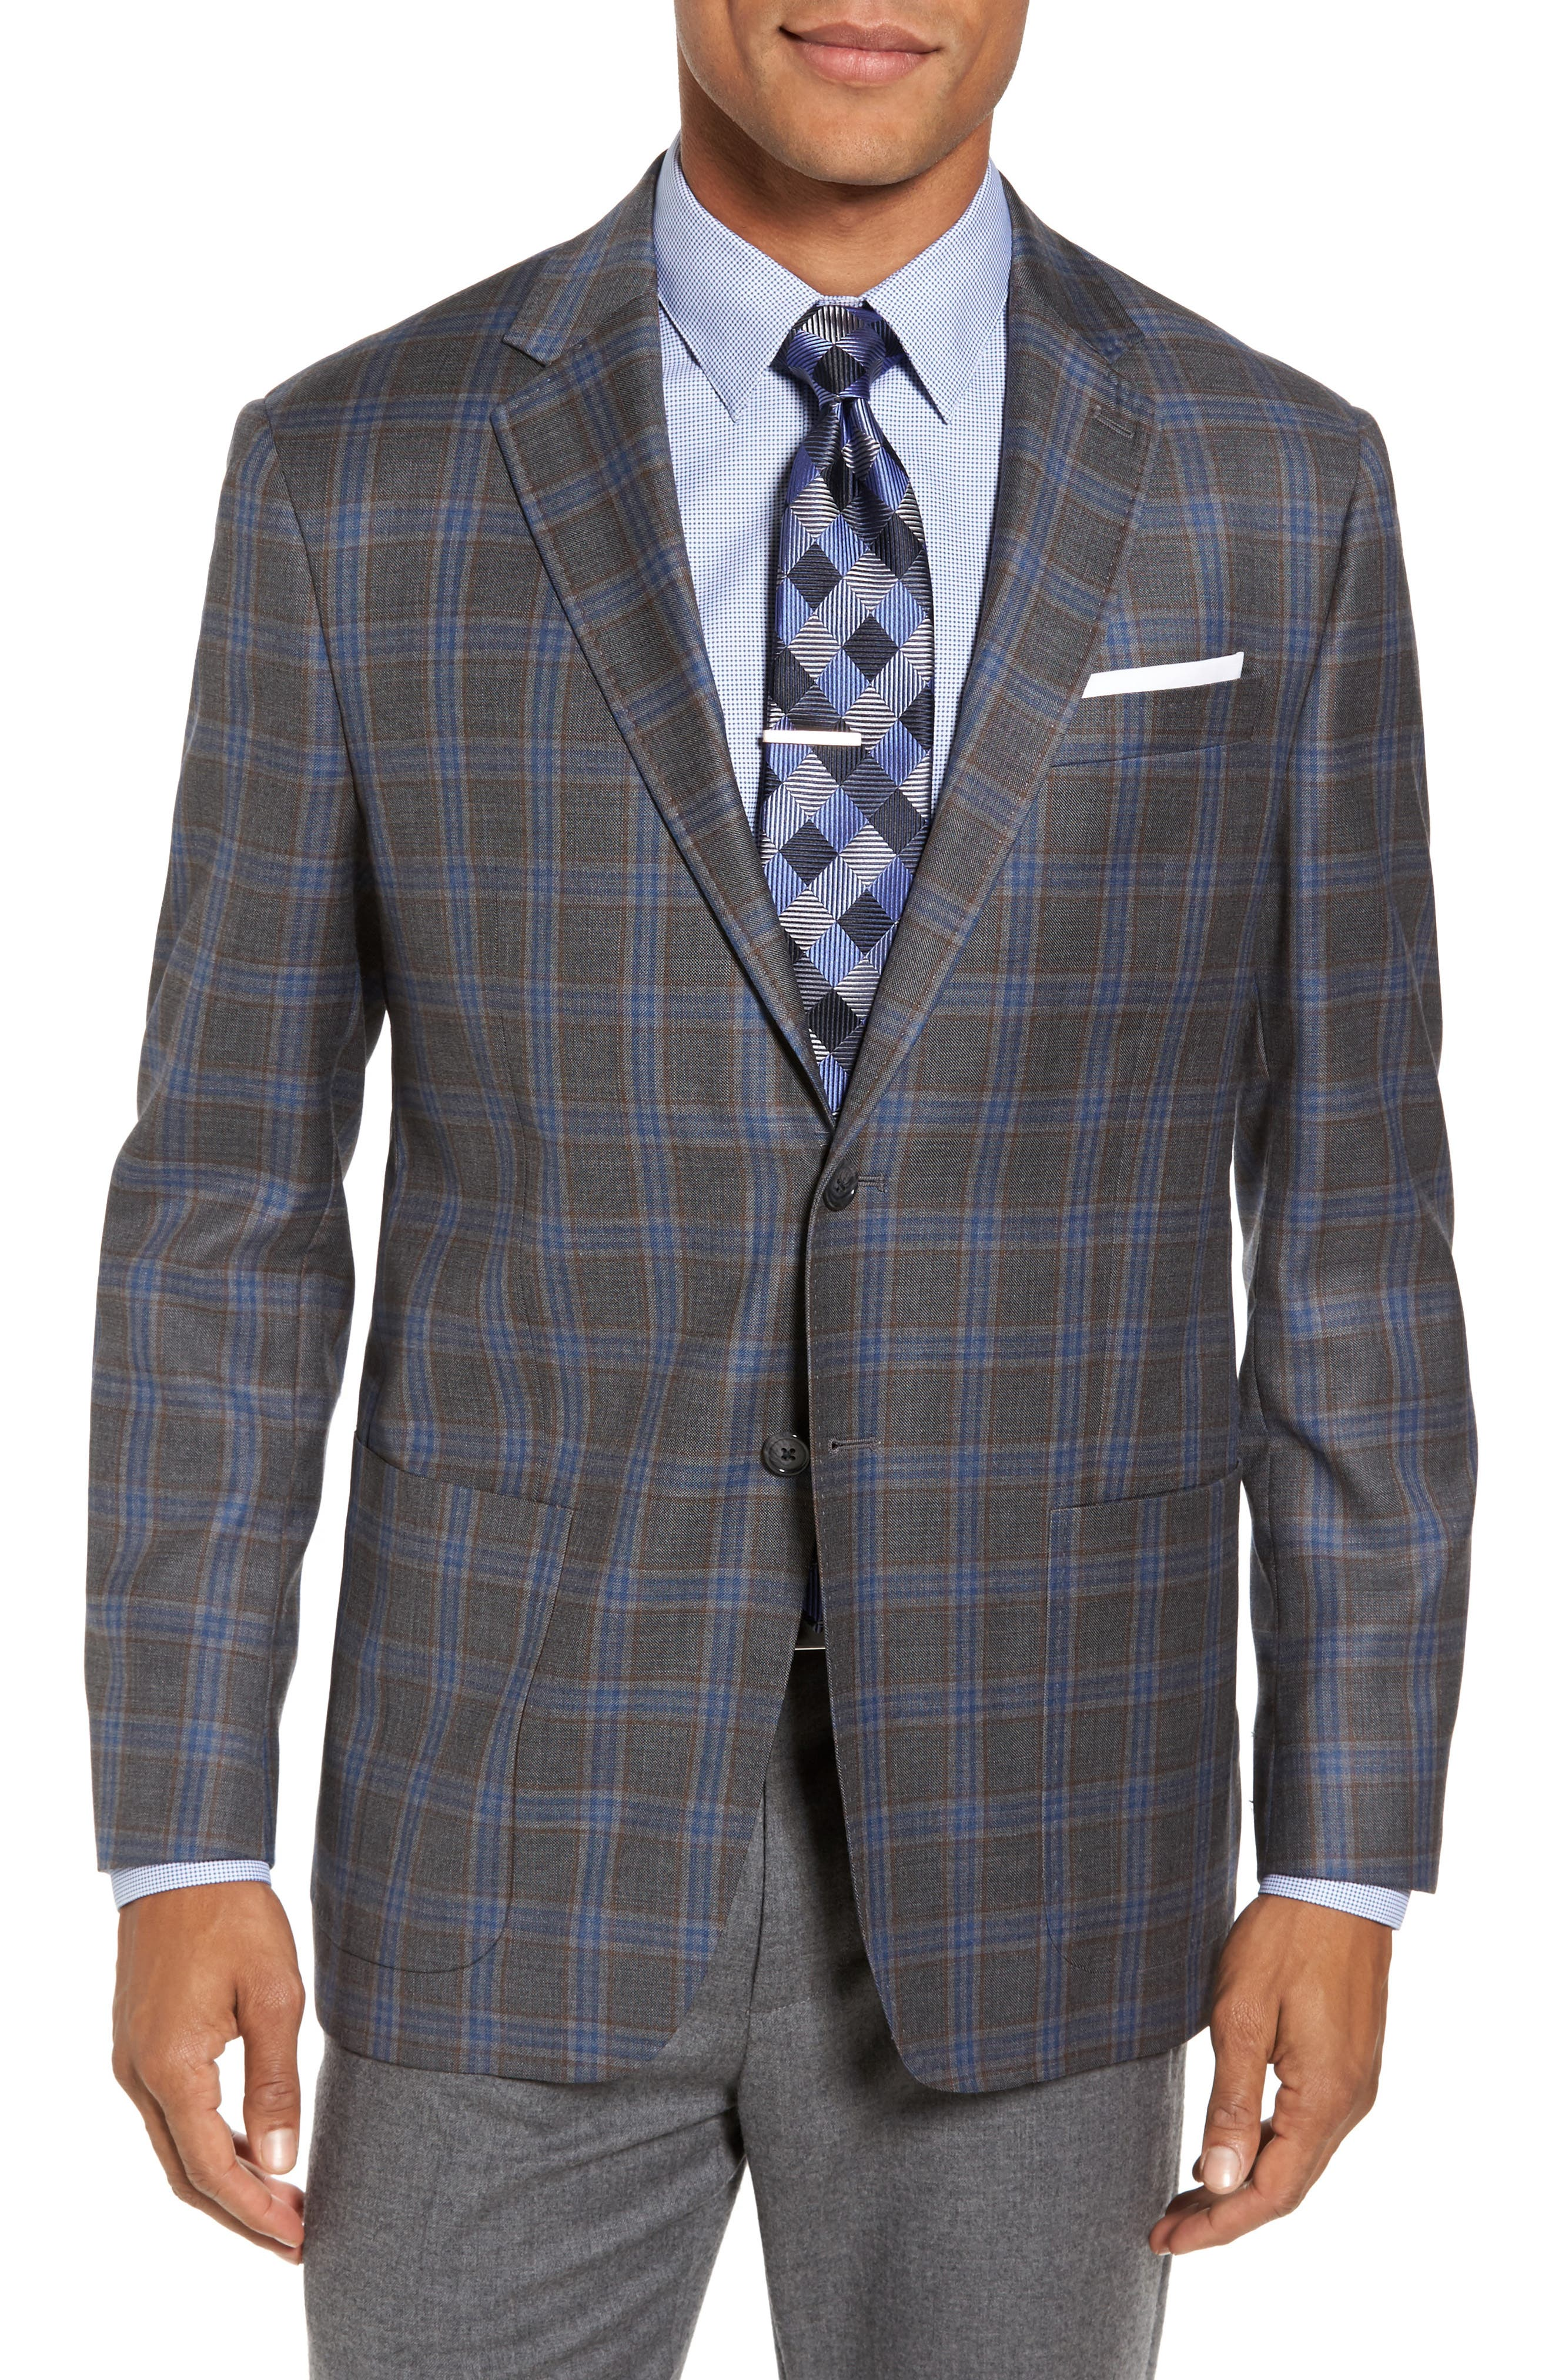 Todd Snyder White Label Plaid Wool Sport Coat